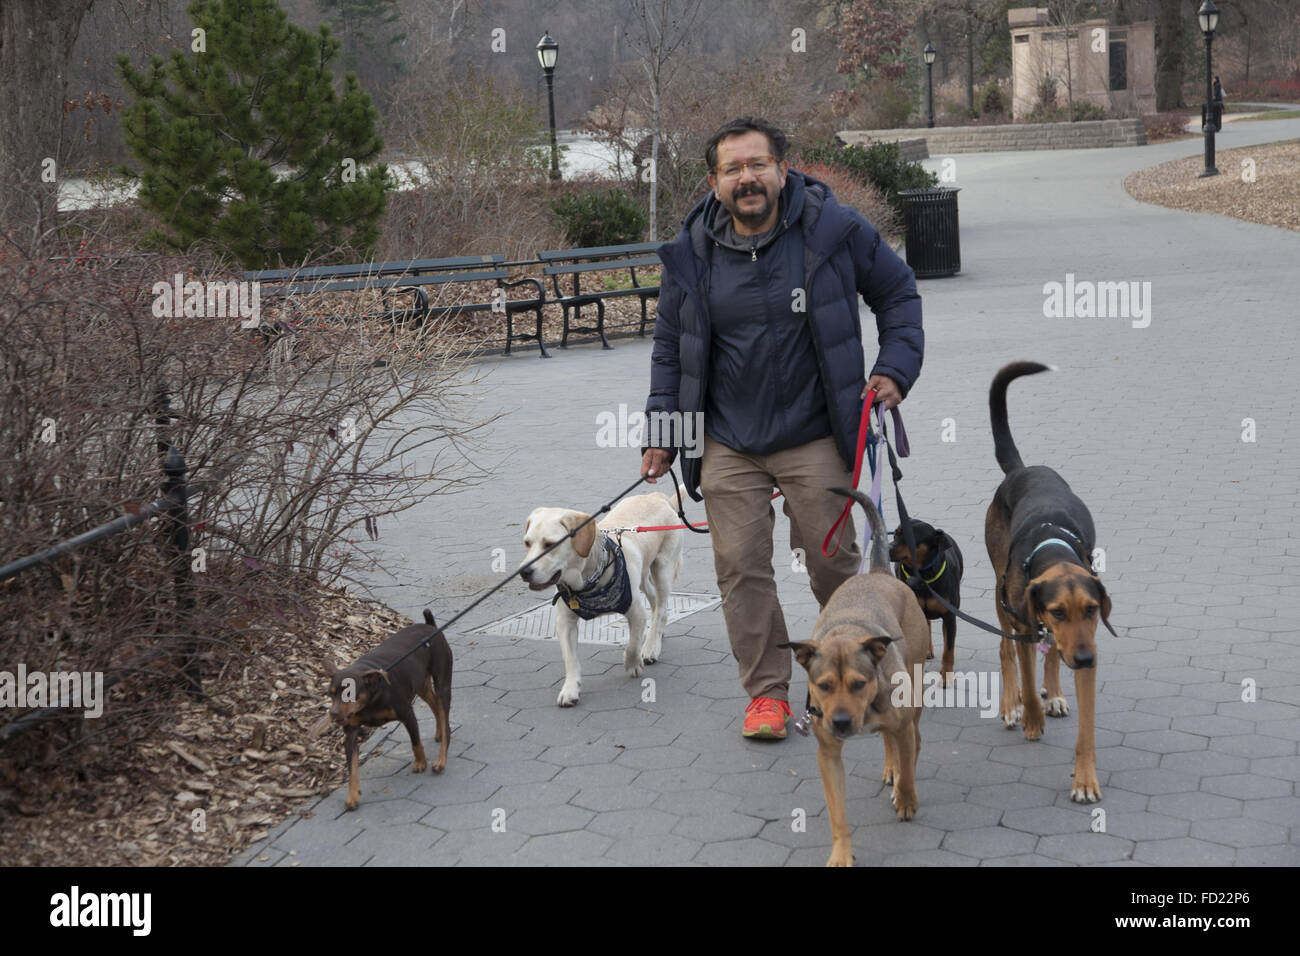 Dog Walking Job High Resolution Stock Photography And Images Alamy